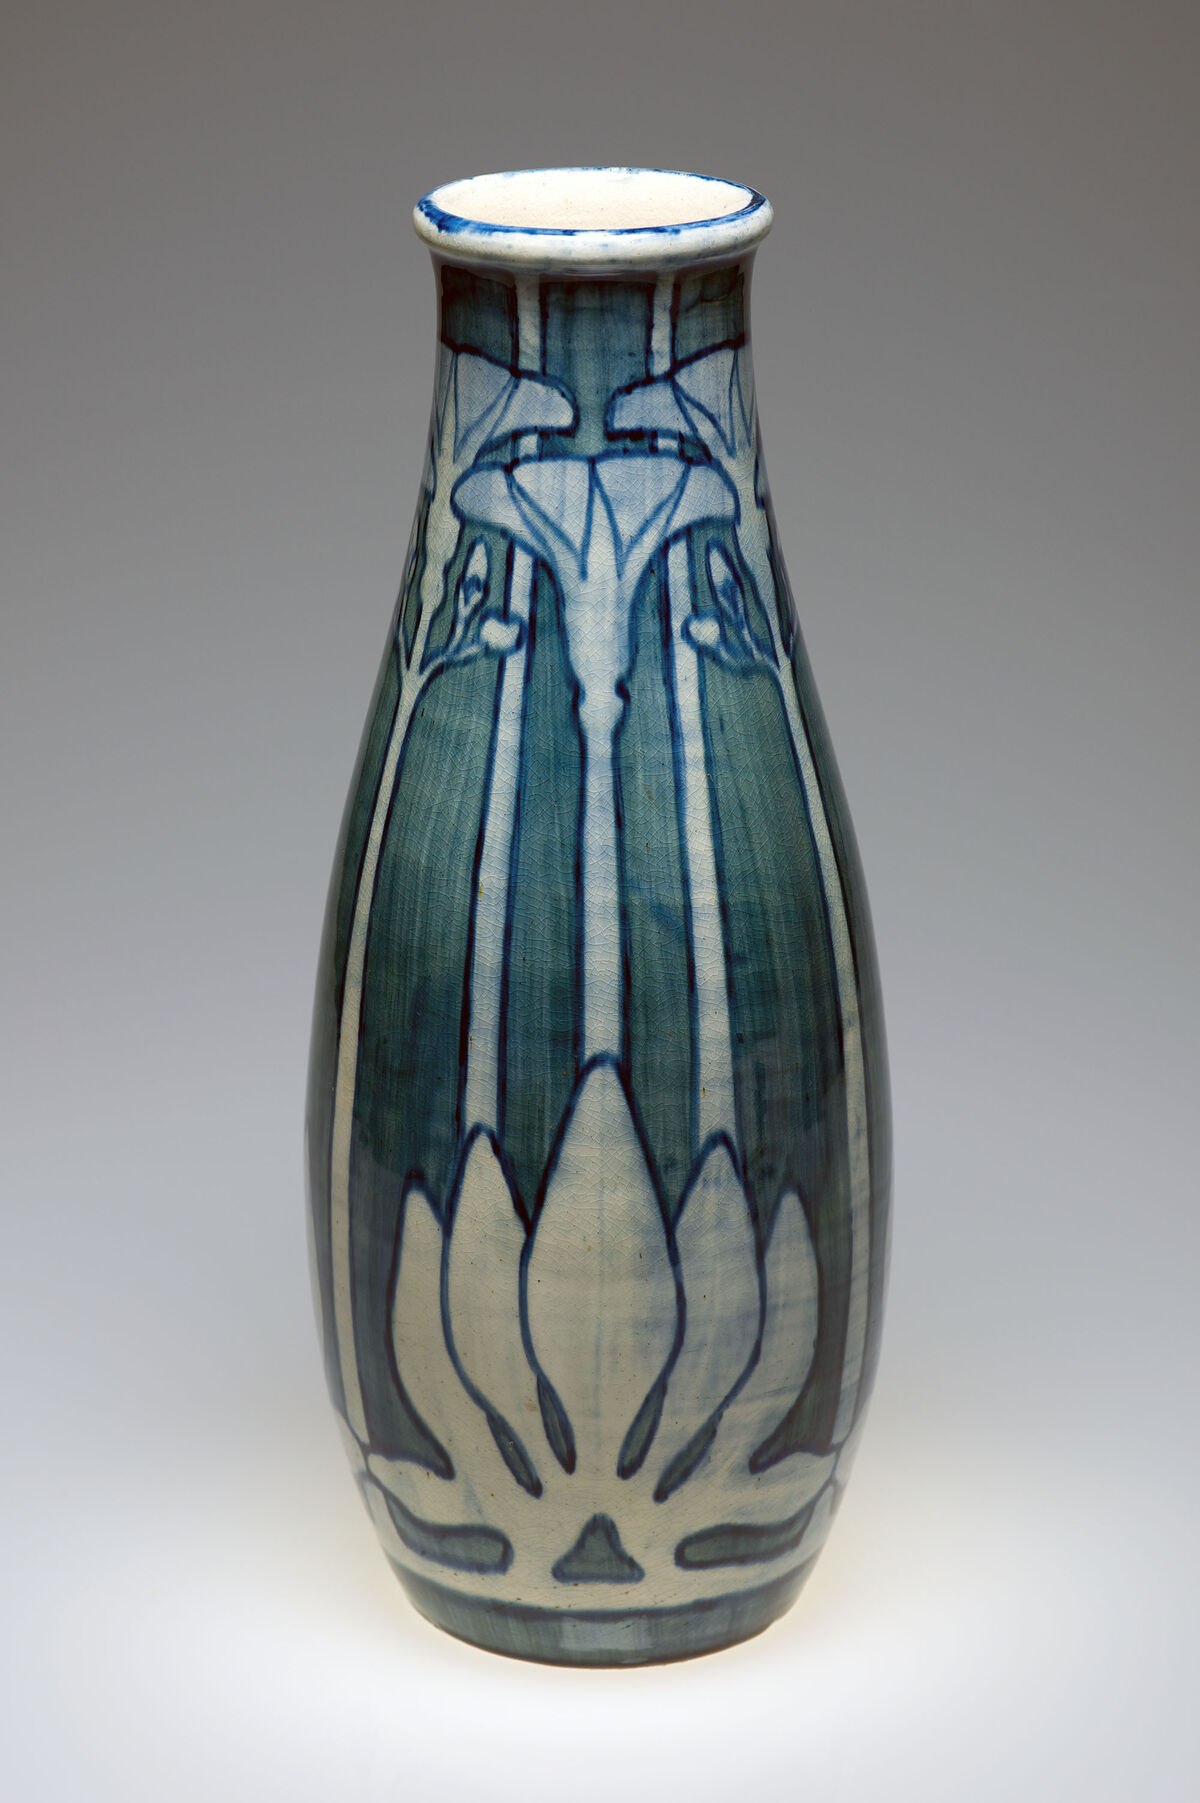 Marie de Hoa LeBlanc, Artist; Joseph Meyer, Potter, Portulaca Vase. Collection of the Newcomb Art Museum of Tulane University.